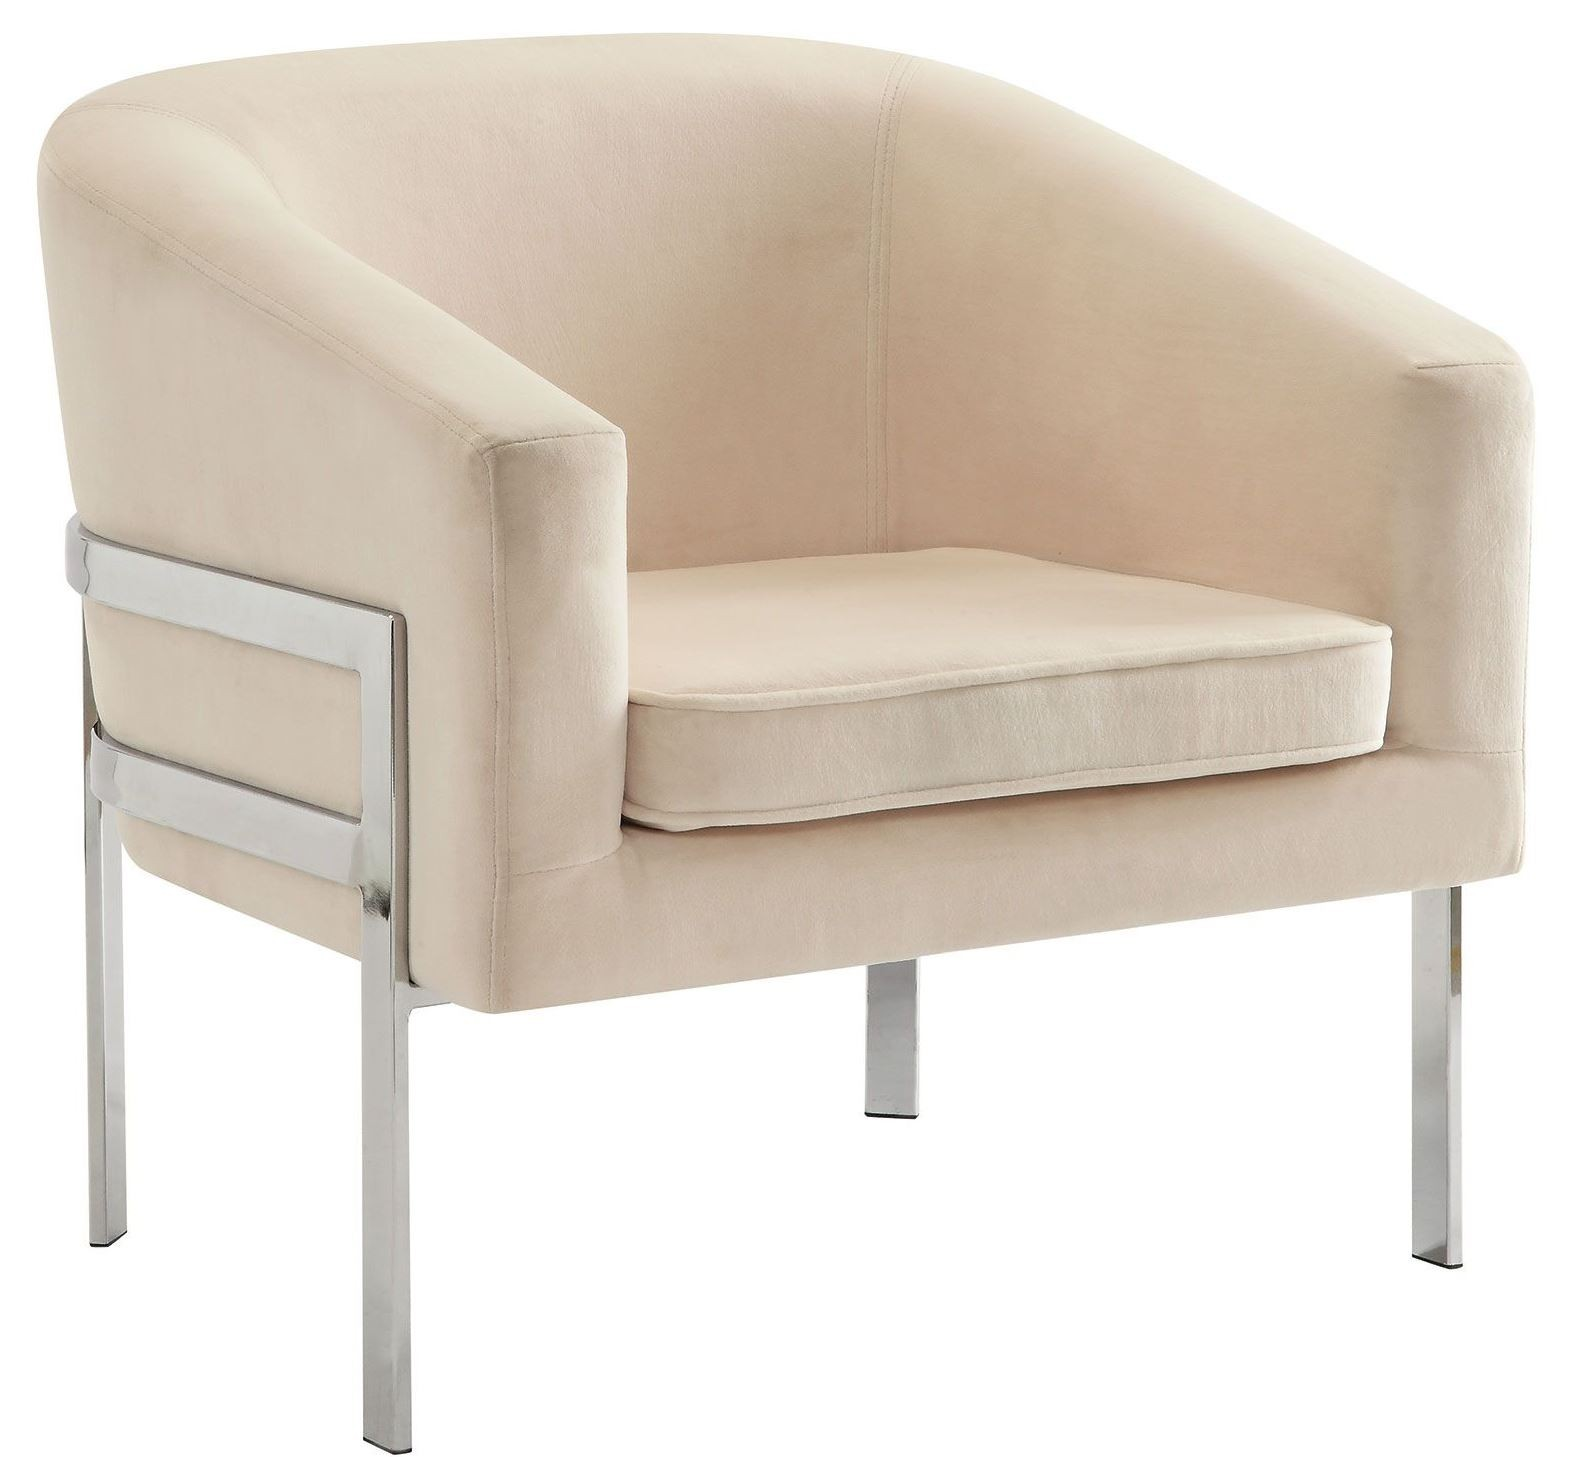 Cream Accent Chair Cream Velvet Accent Chair From Coaster 902535 Coleman